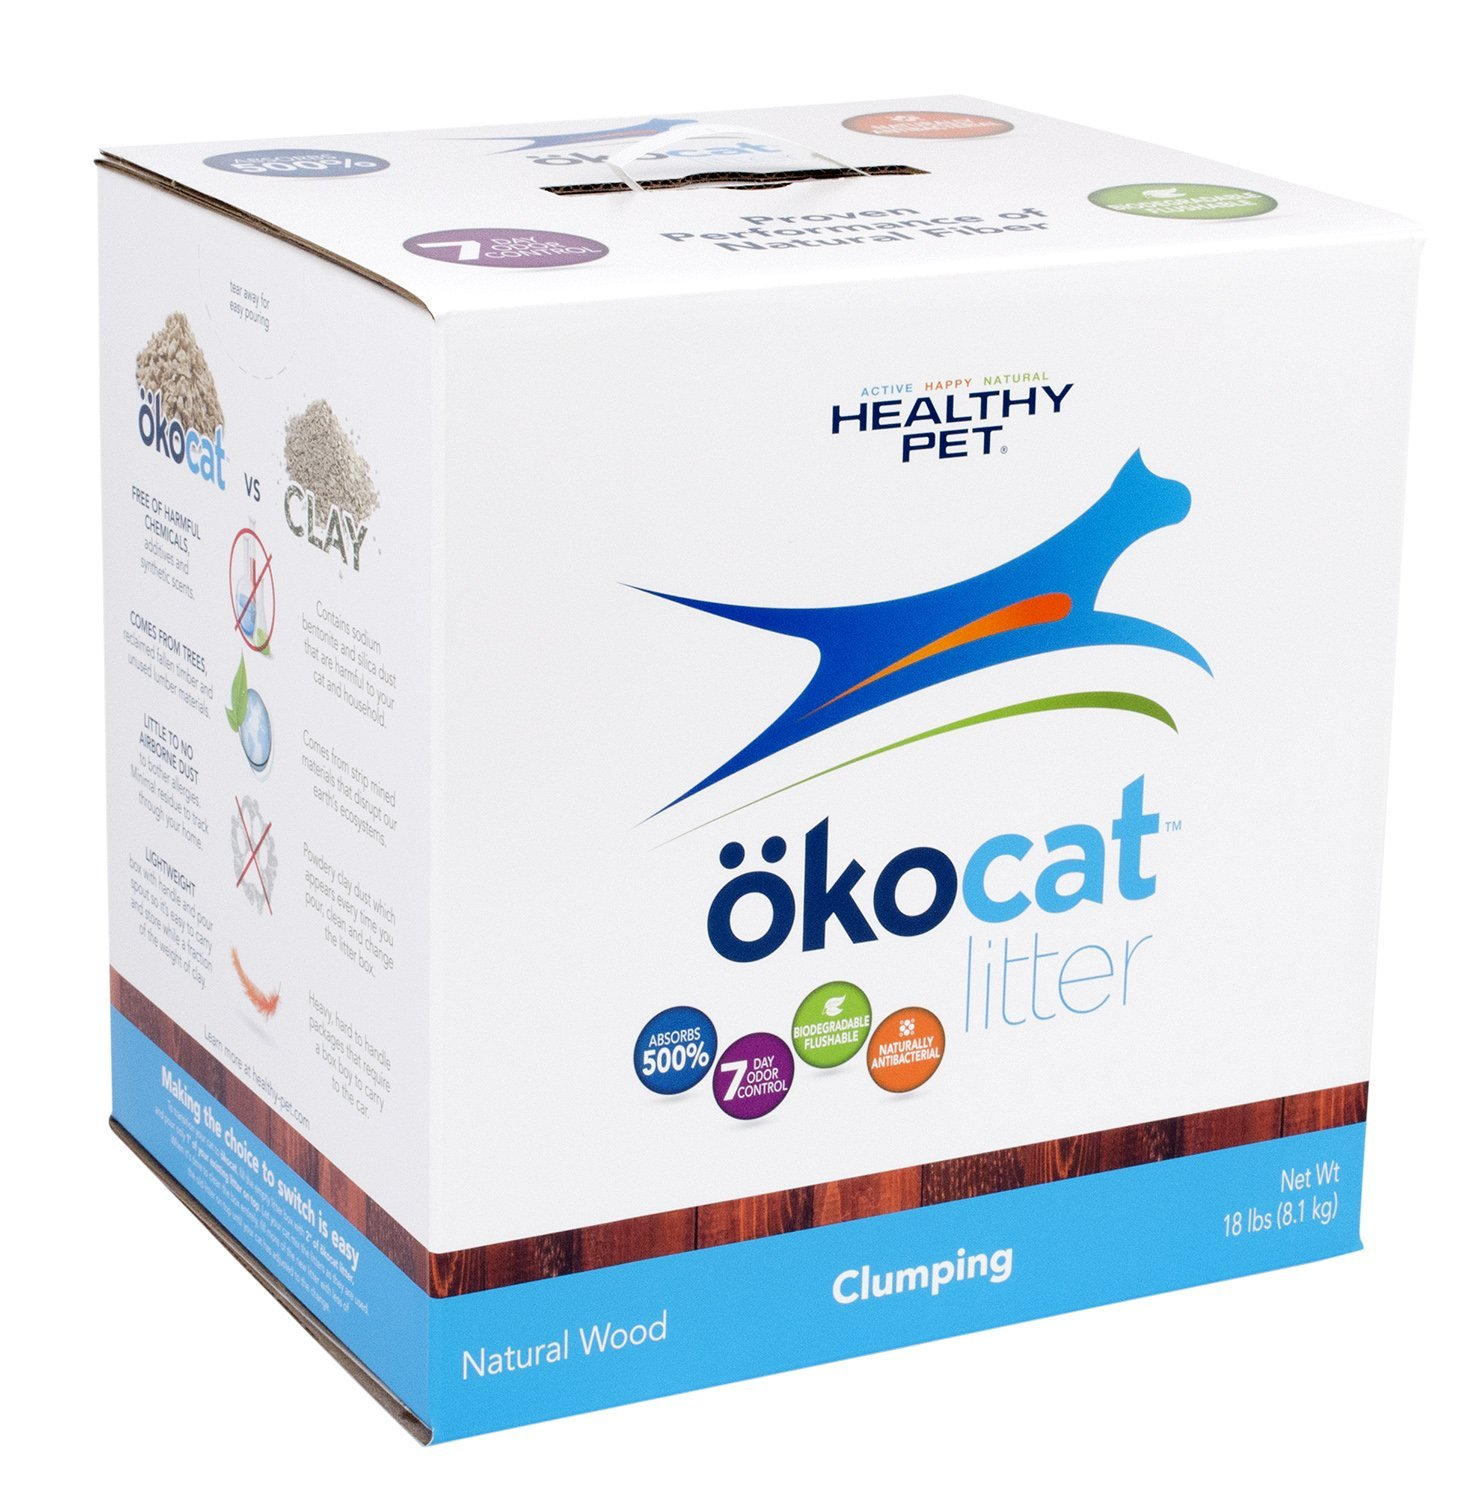 ökocat Natural Wood Cat Litter, Clumping